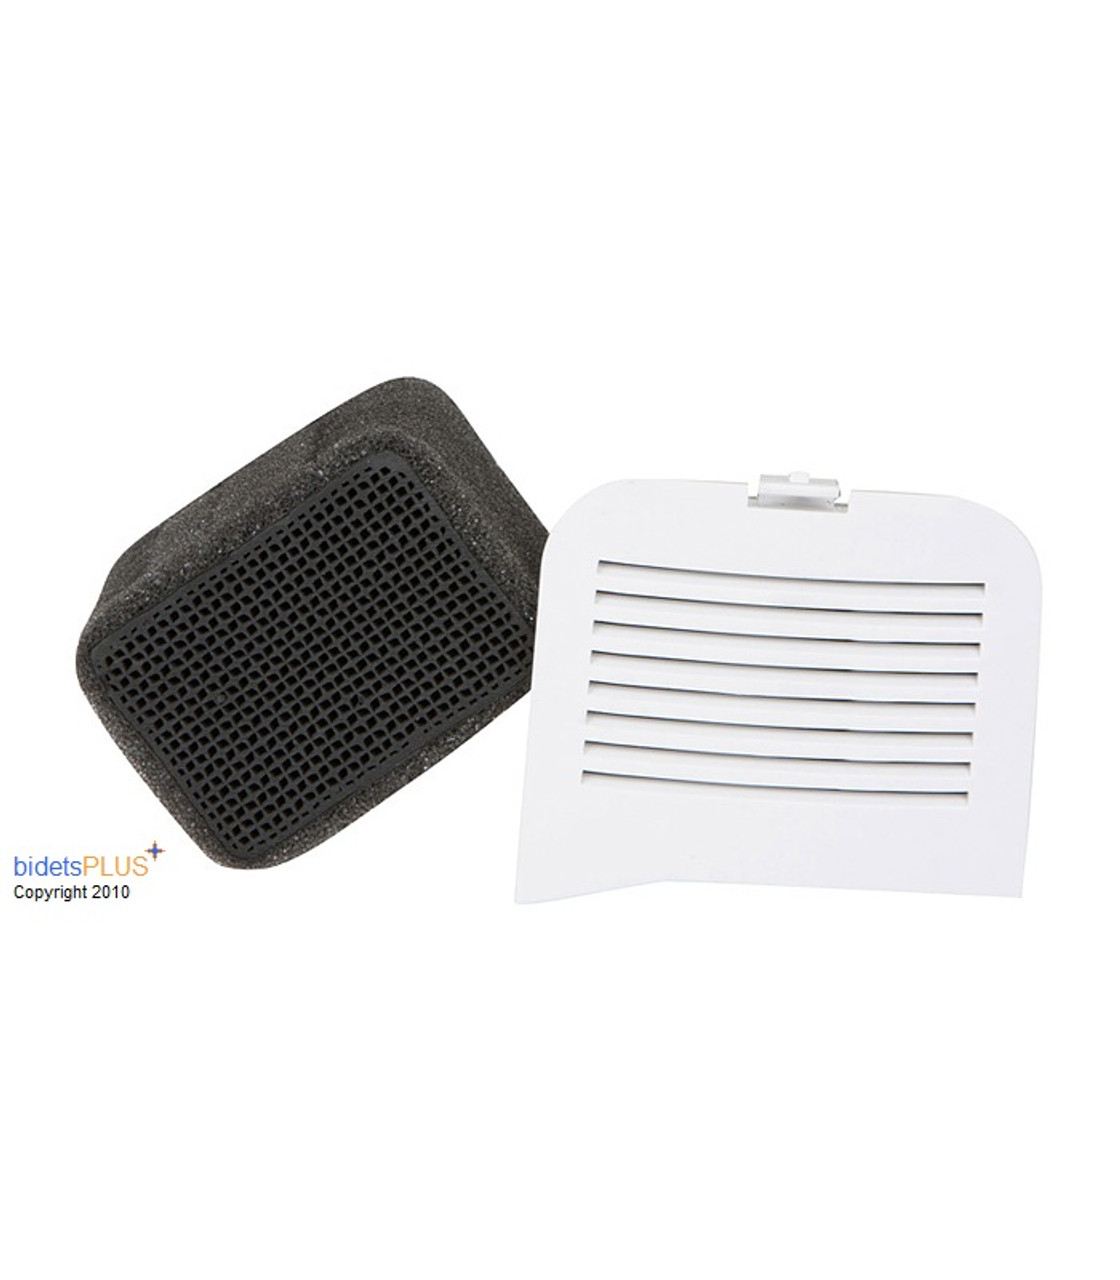 Uspa Air Deodorizer Filter 6800 Air Deodorizer Filter Uspa 6800 Air Deodorizer Filter